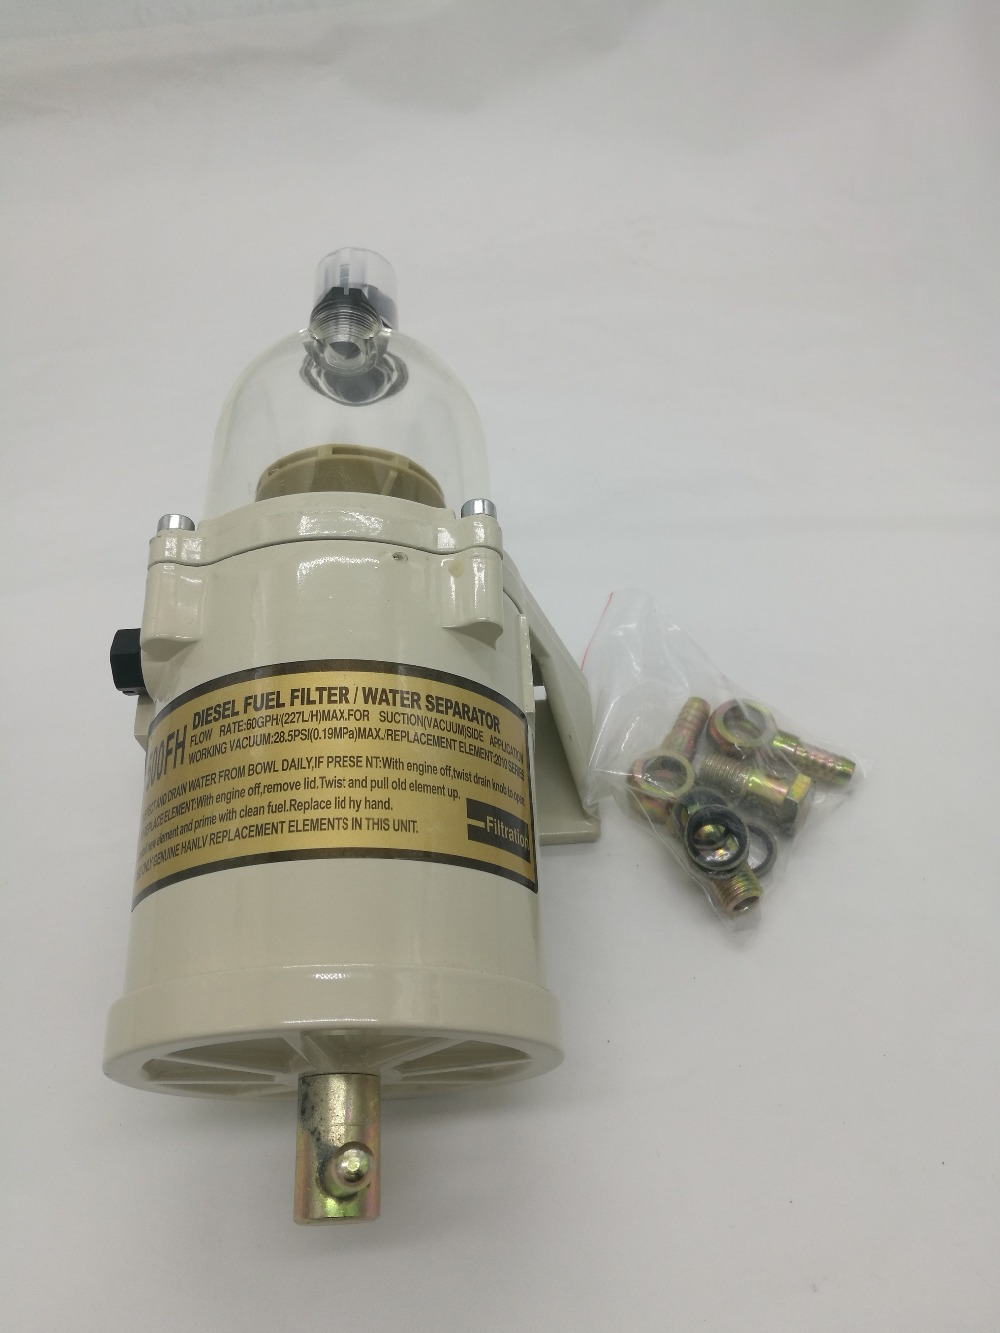 500FG ASSEMBLY FUEL WATER SEPARATOR RACOR FILTER TURBINE DIESEL ENGINE FILTER MARINE SET PARTS INCLUDE 2010PM